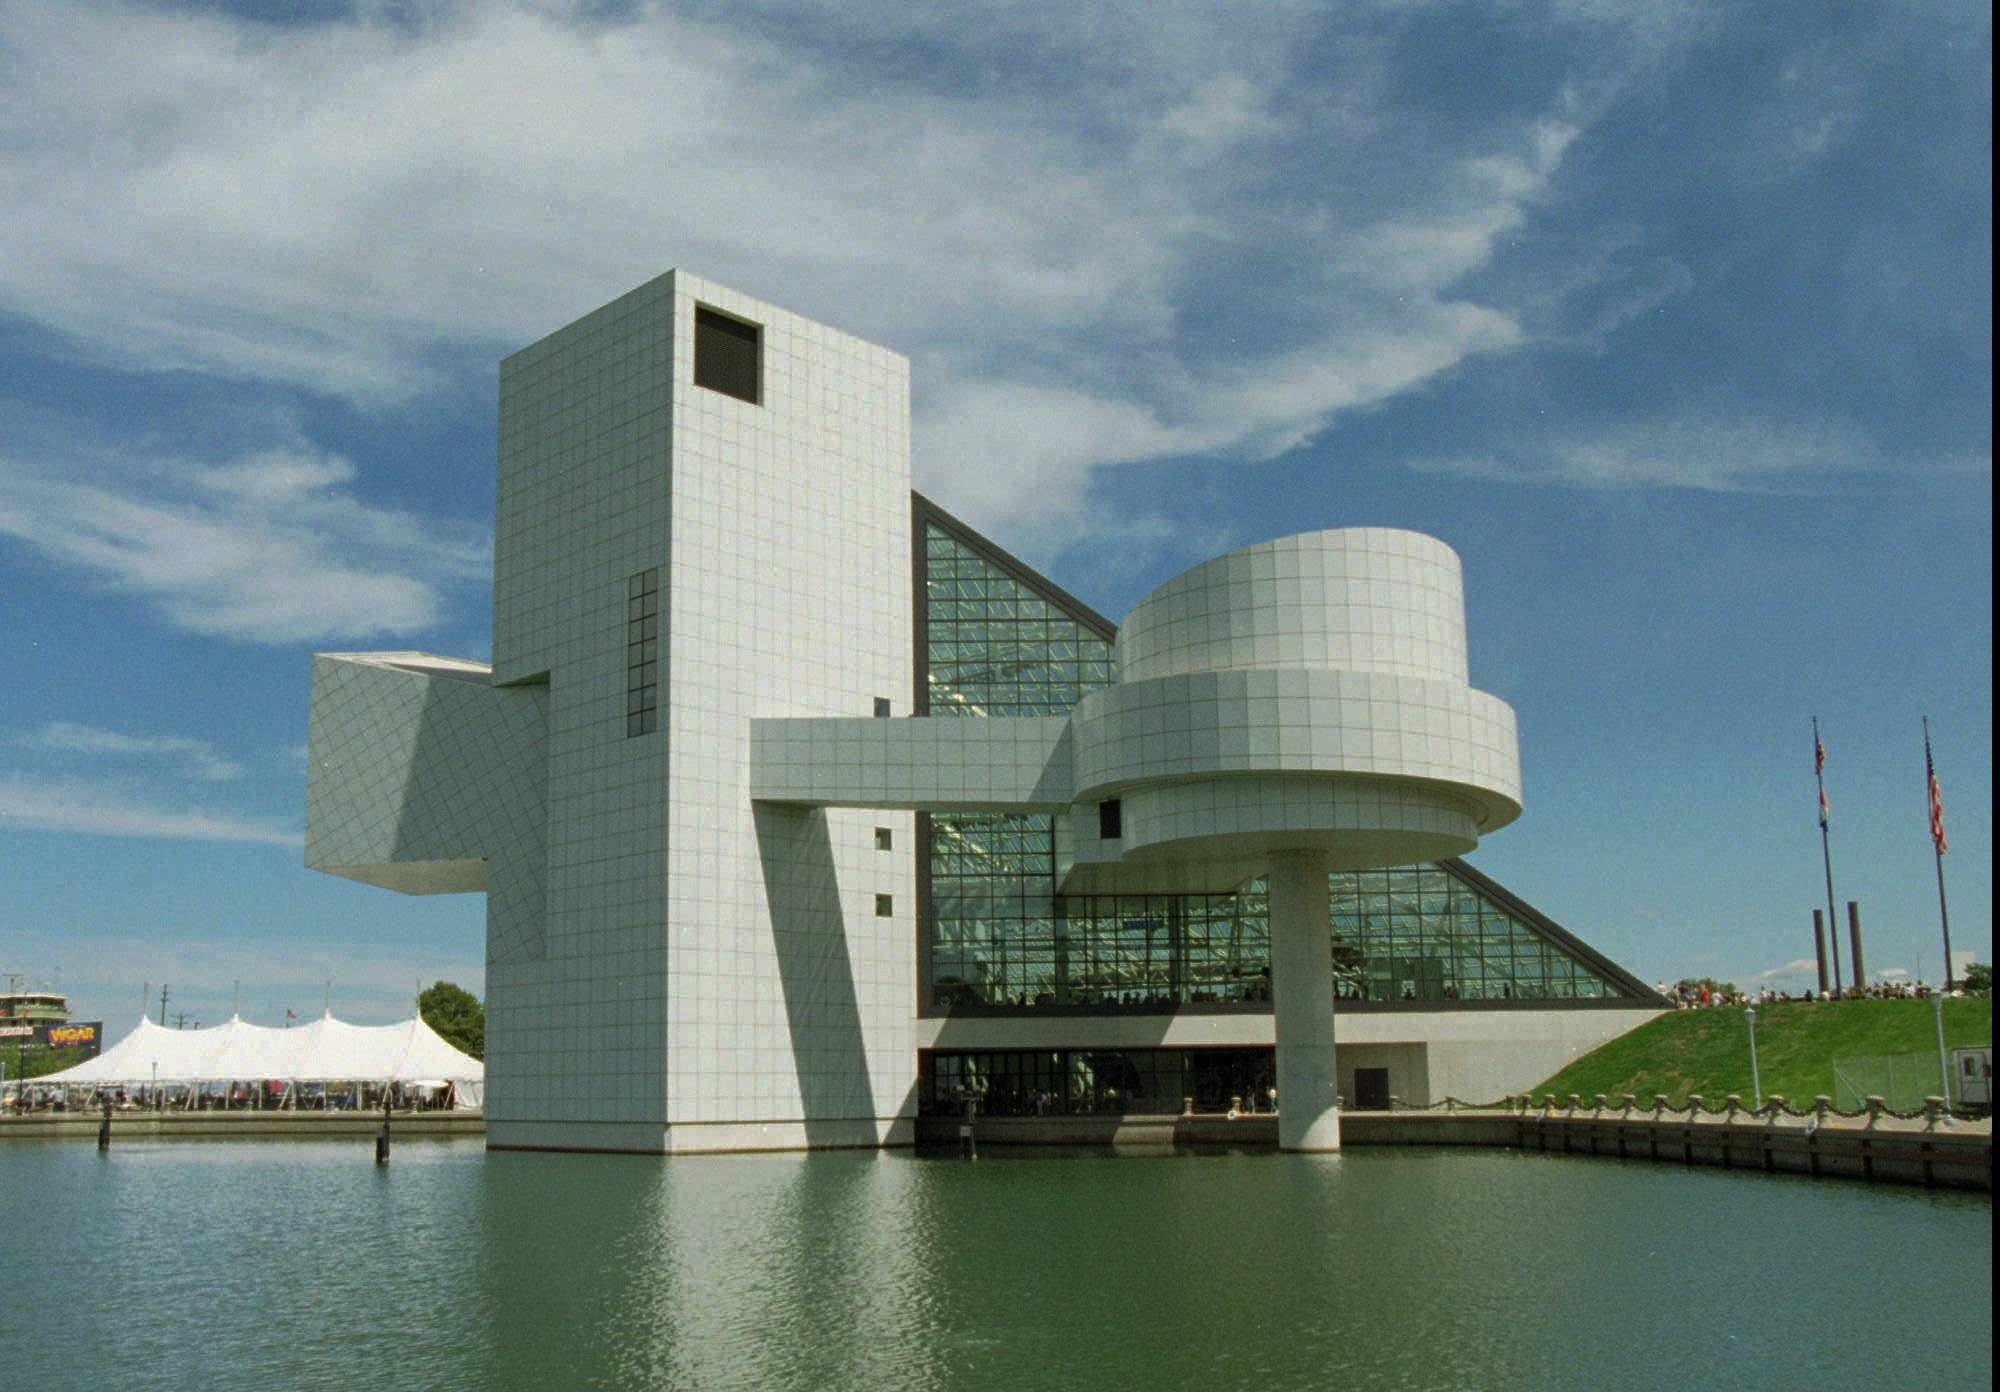 The Rock and Roll Hall of Fame and Museum is Cleveland's biggest international tourist attraction.